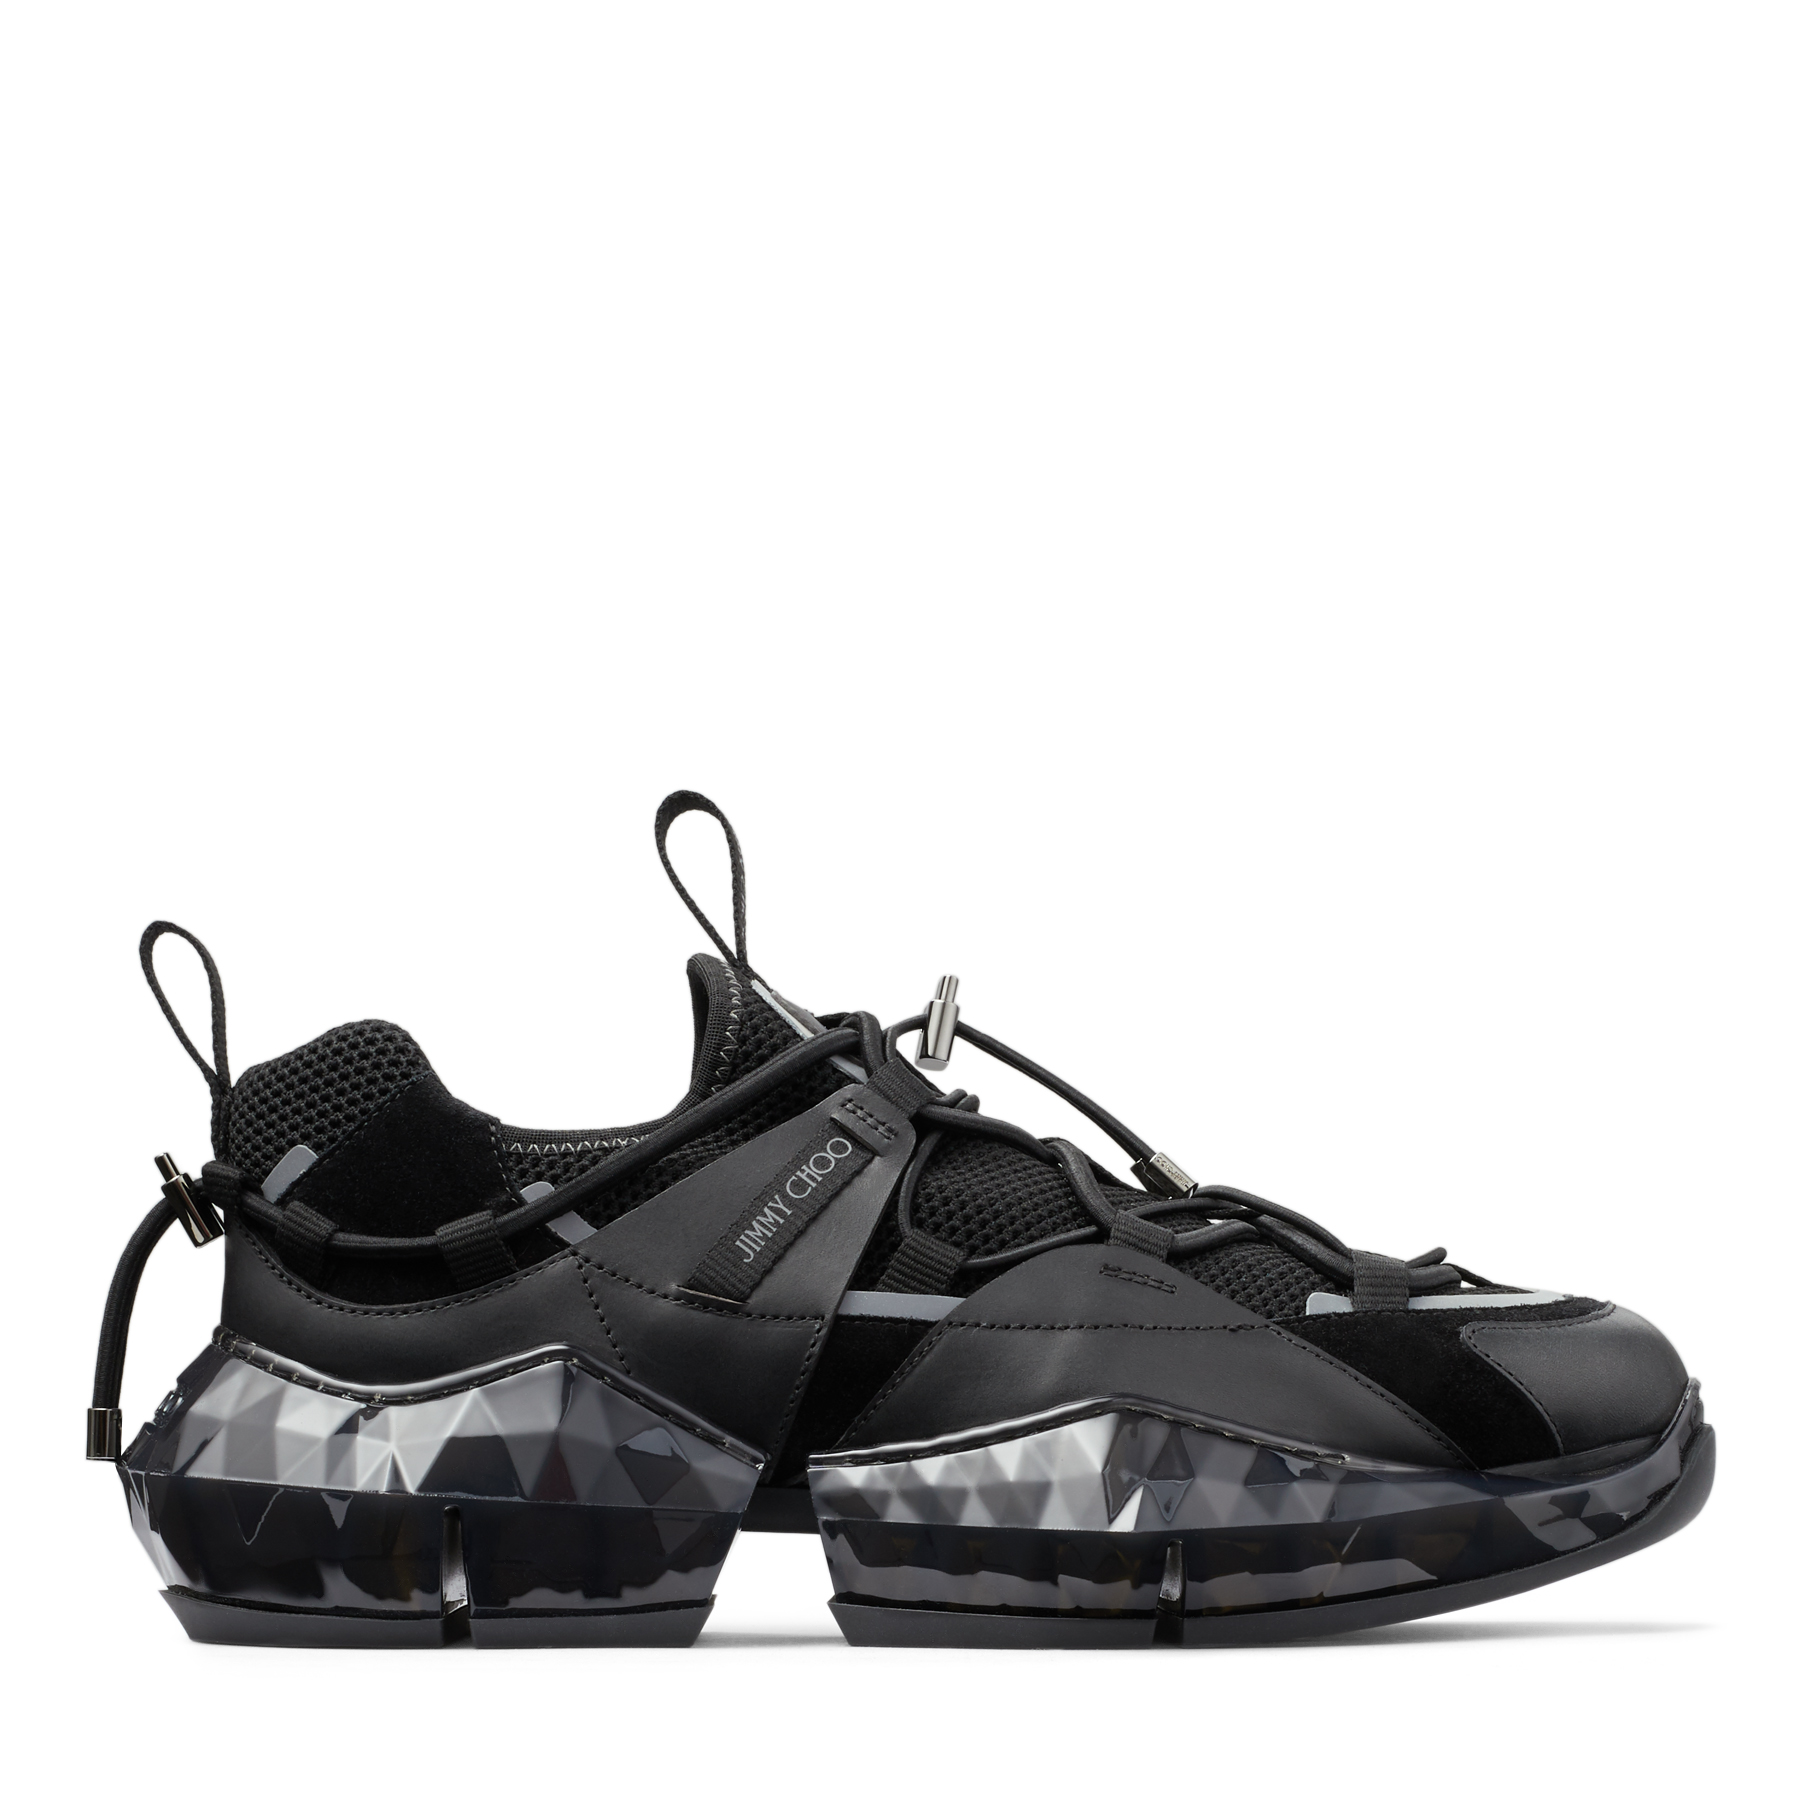 Jimmy Choo Shoes DIAMOND TRAIL/M BLACK STRETCH MESH DIAMOND TRAIL TRAINERS WITH LEATHER DETAILING